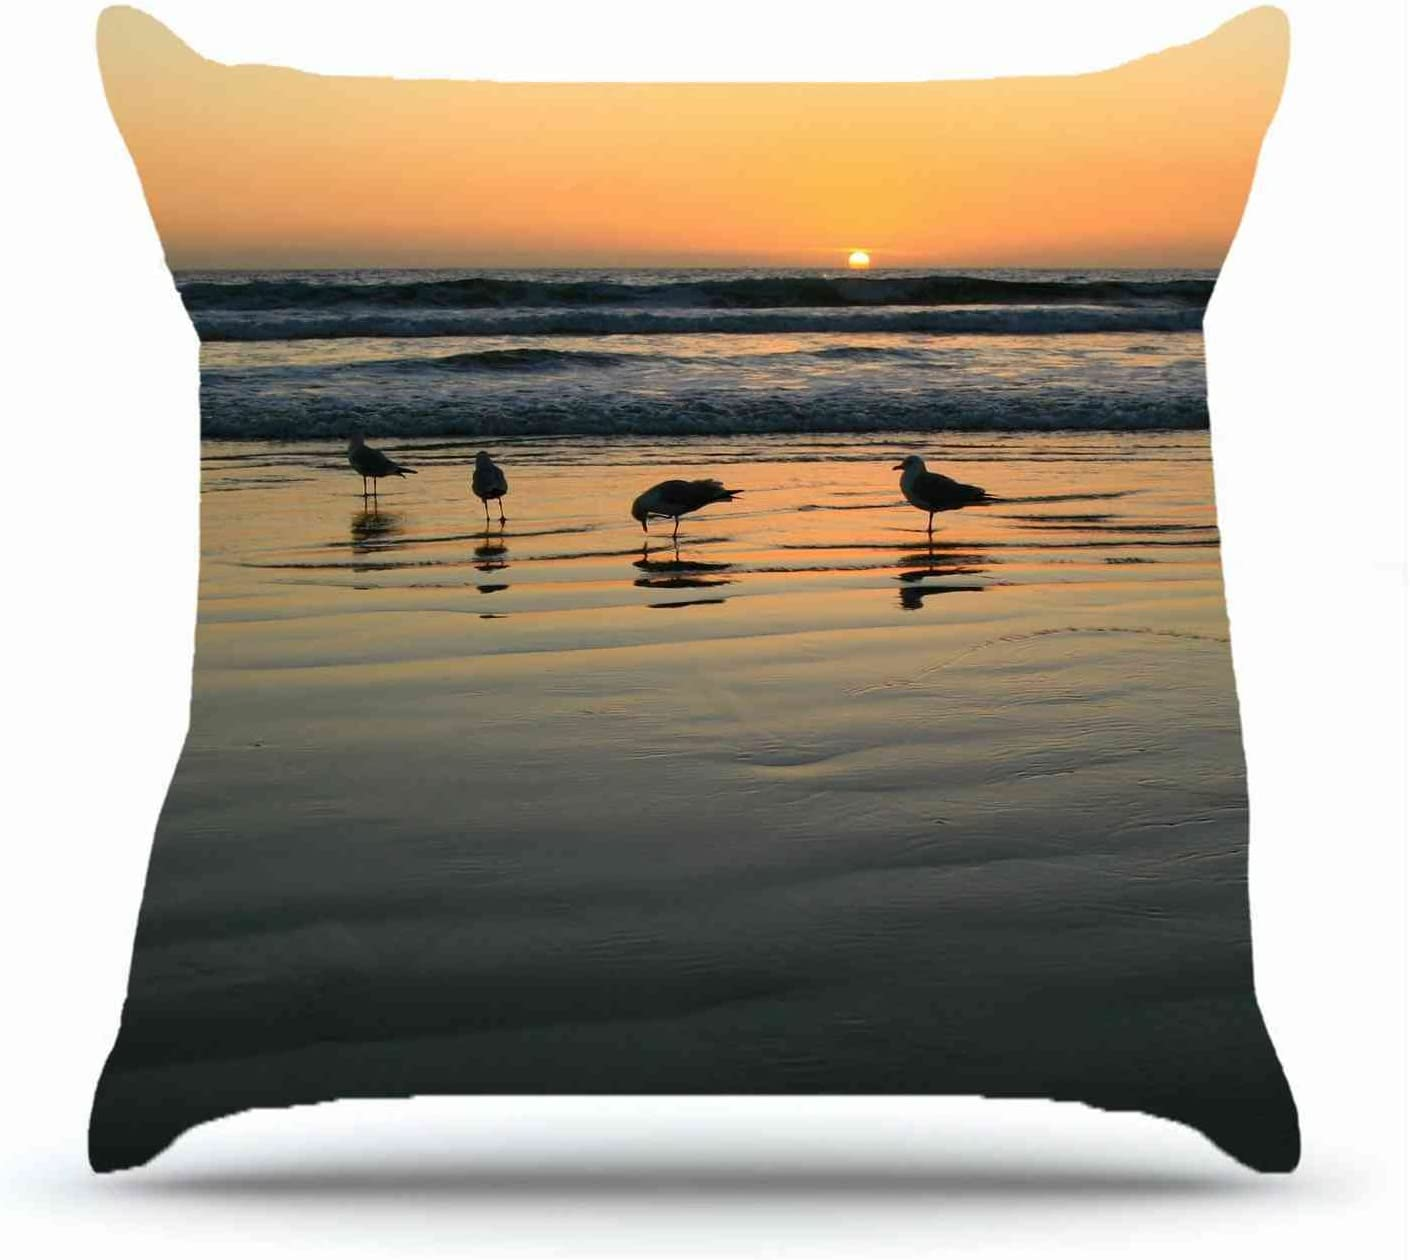 Throw Pillowcase 18 X 18 Inches Cotton Pillowcases Decorative Pillow Cover Case with Hidden Zipper Cushion Covers - Animals gulls sea s sunset nlight For Living Room